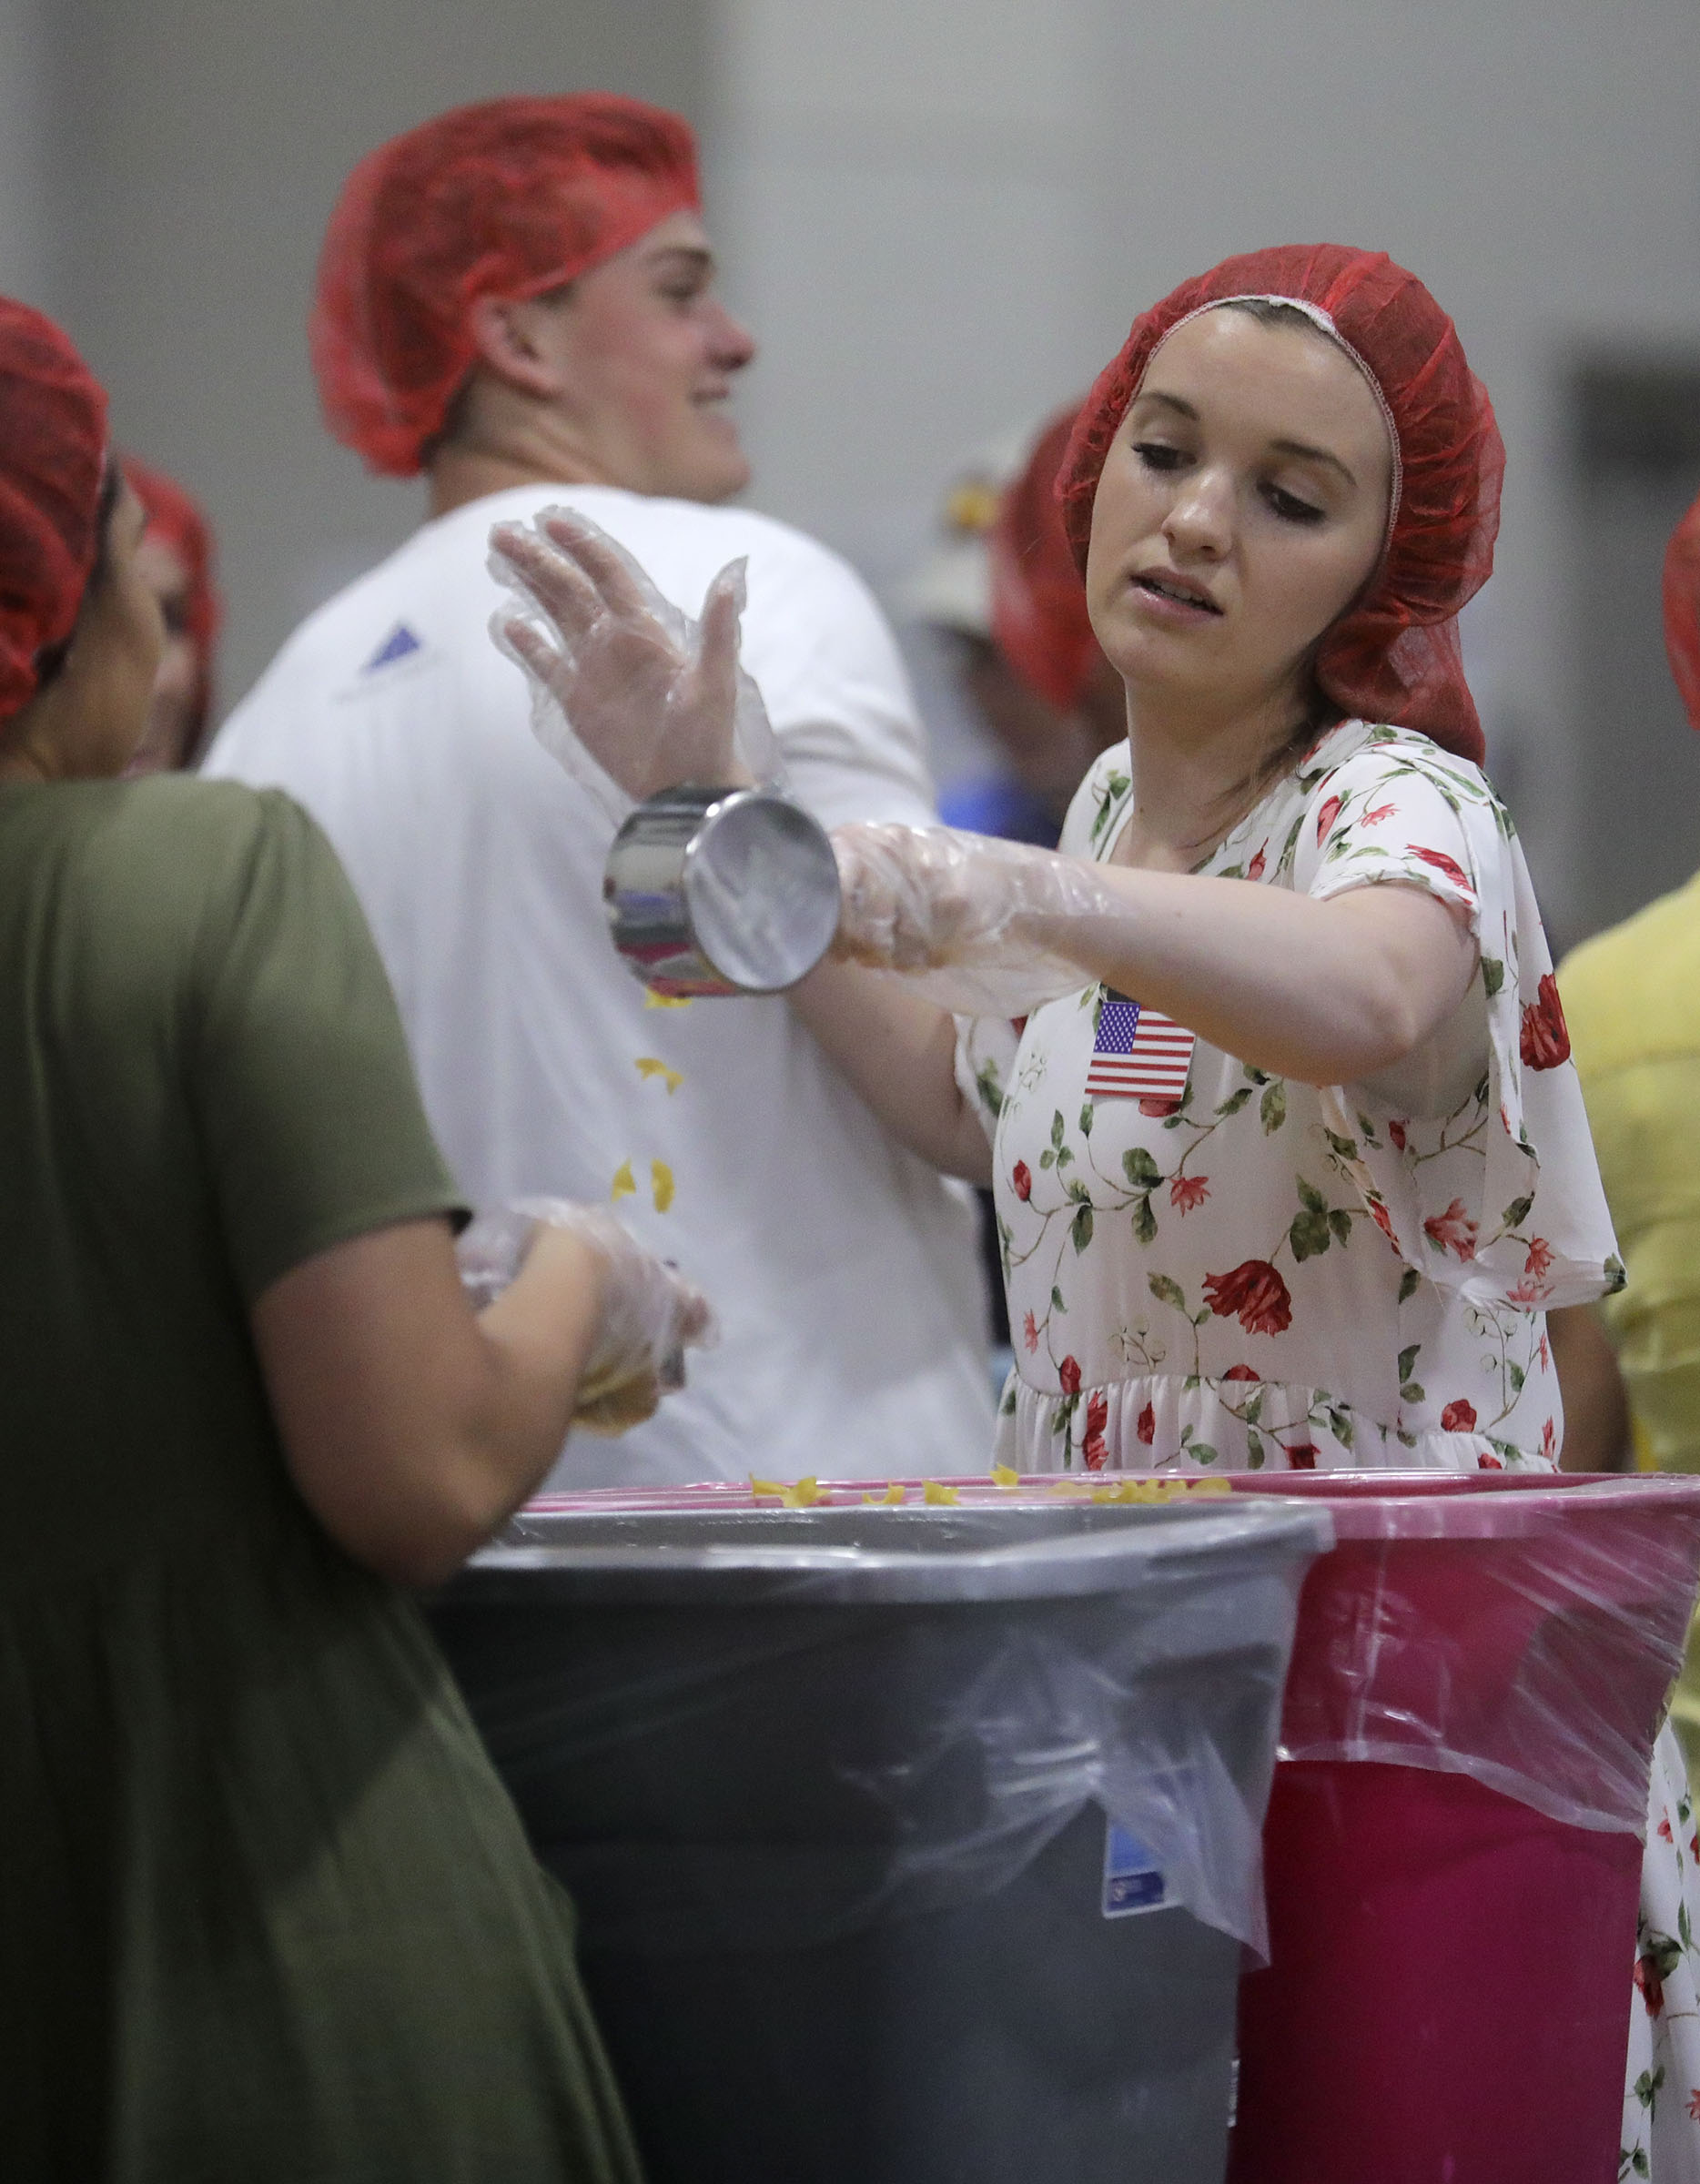 Addison Donovan dances while packaging pasta dinners for a service project during the 68th United Nations Civil Society Conference at the Salt Palace Convention Center in Salt Lake City on Monday, Aug. 26, 2019.